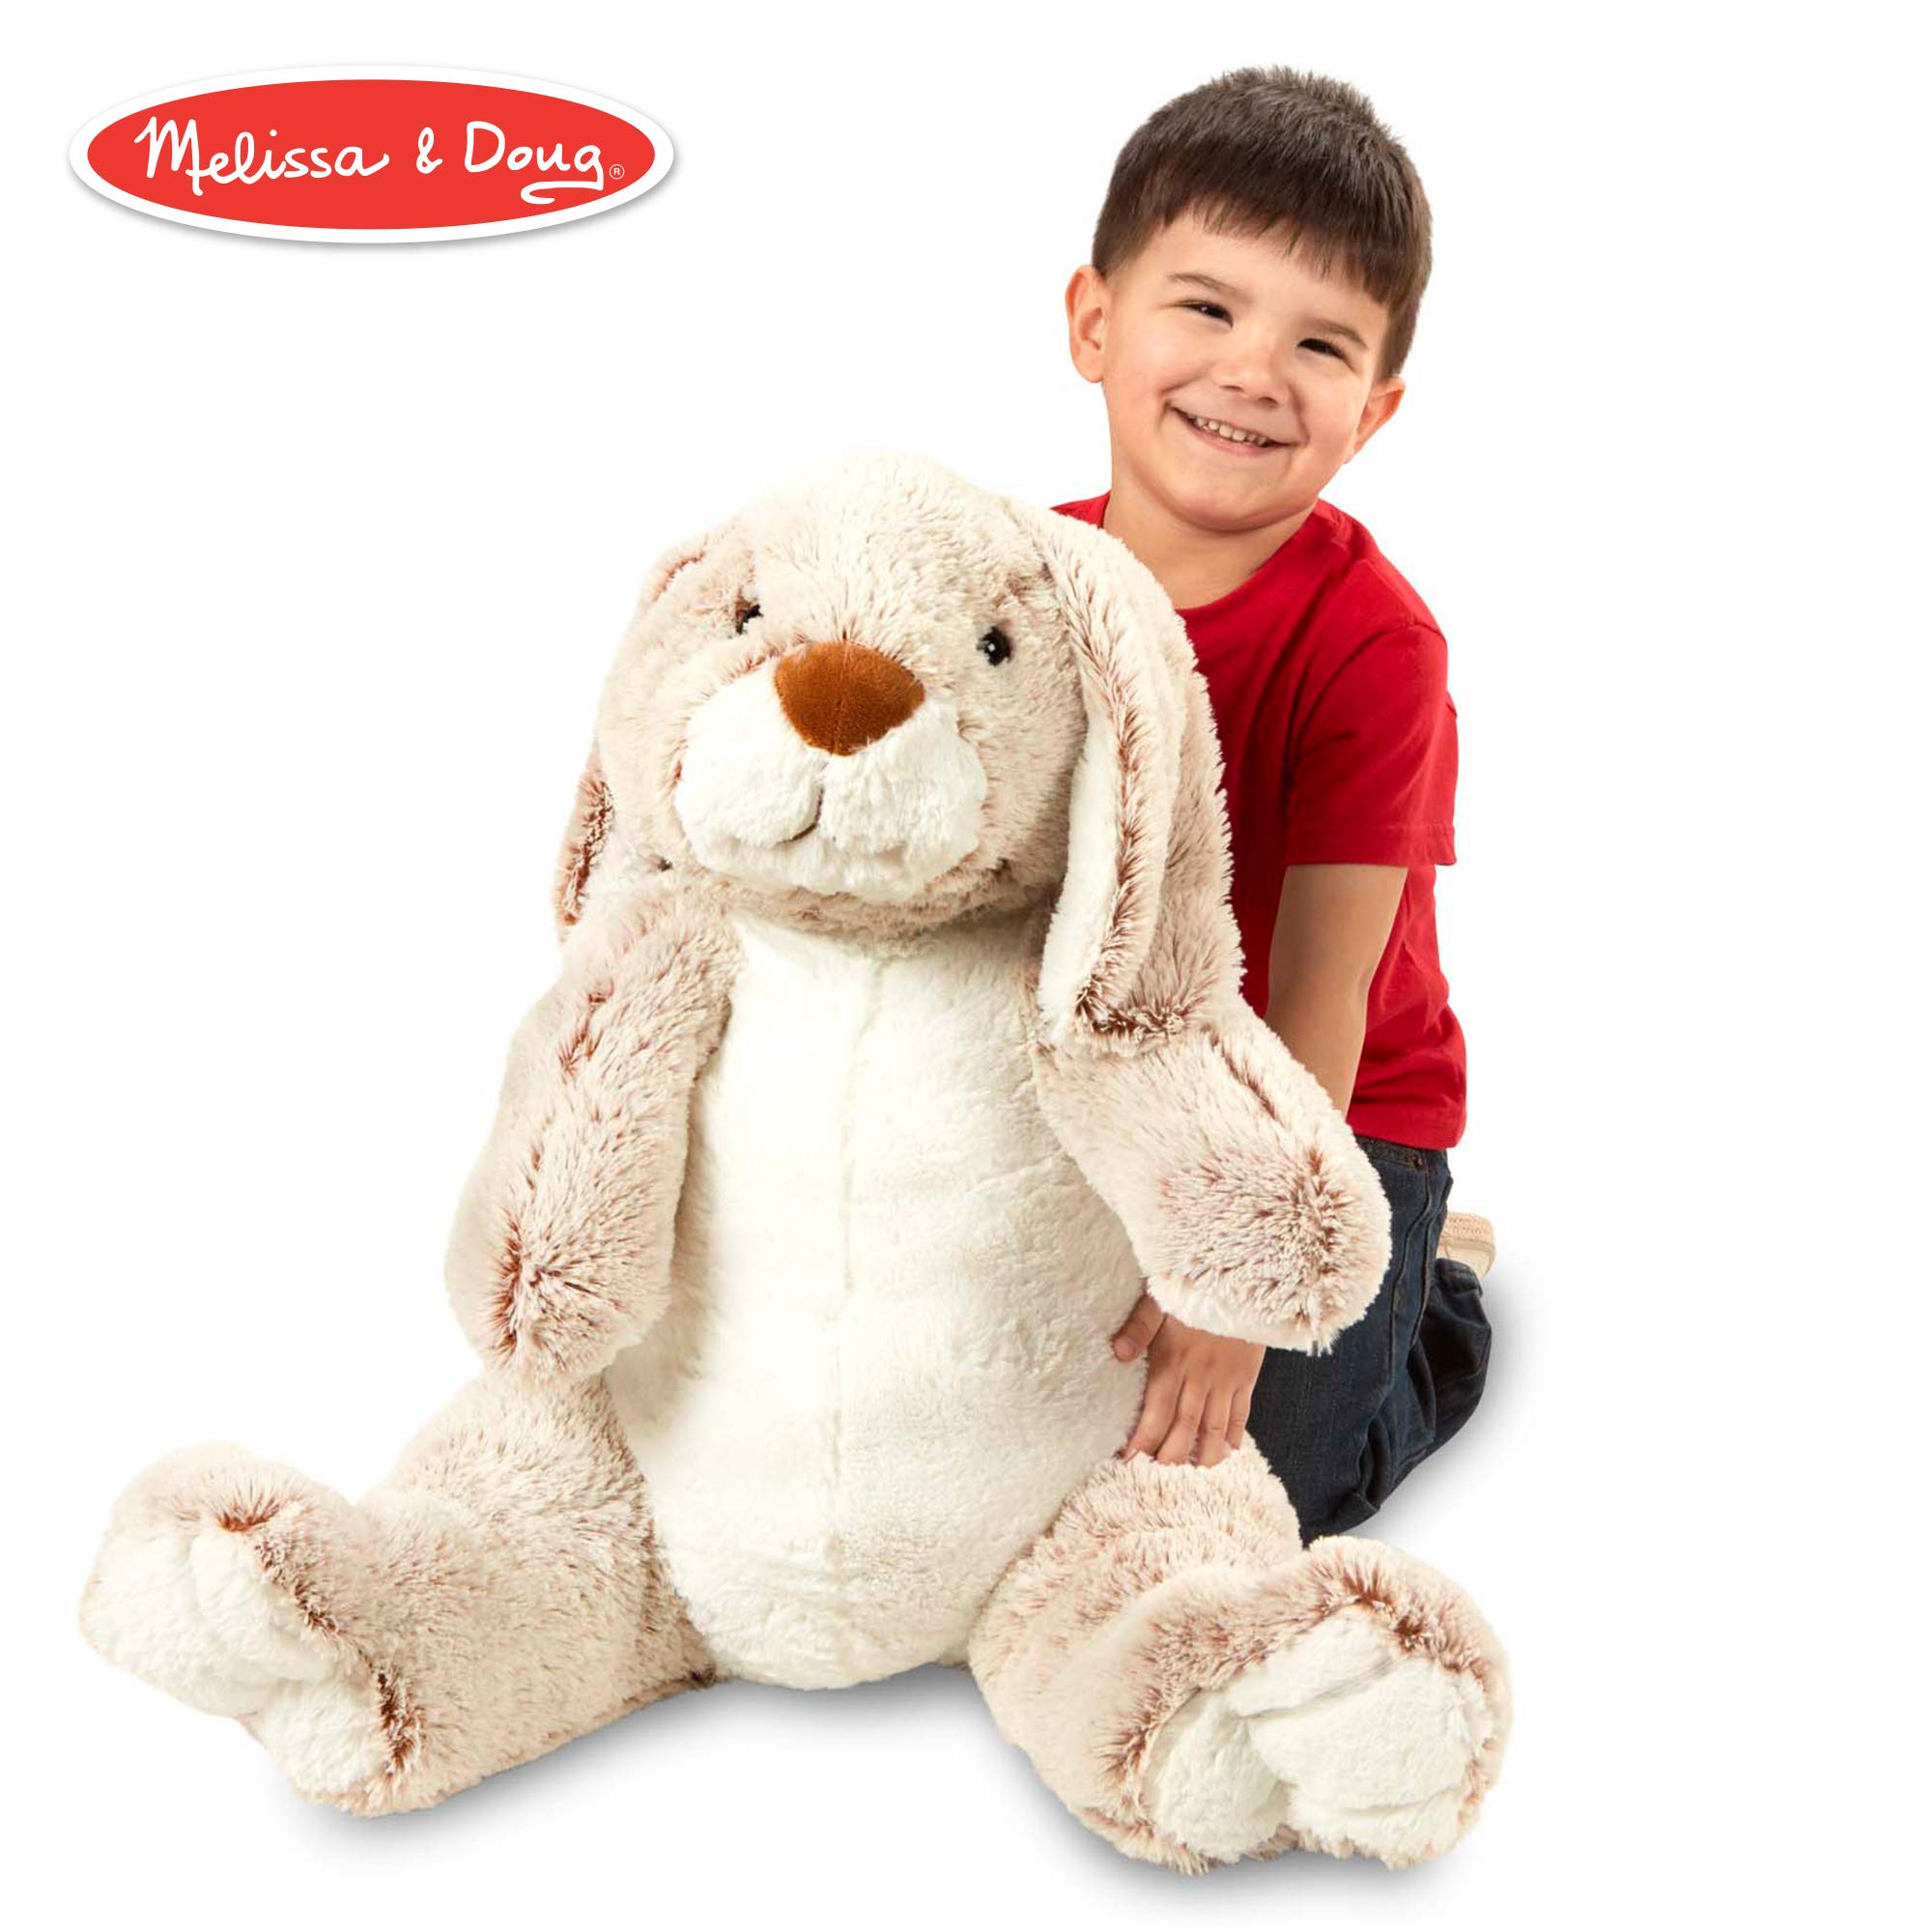 Melissa & Doug Jumbo Burrow Bunny Rabbit Stuffed Animal (21'' Tall) by Melissa & Doug